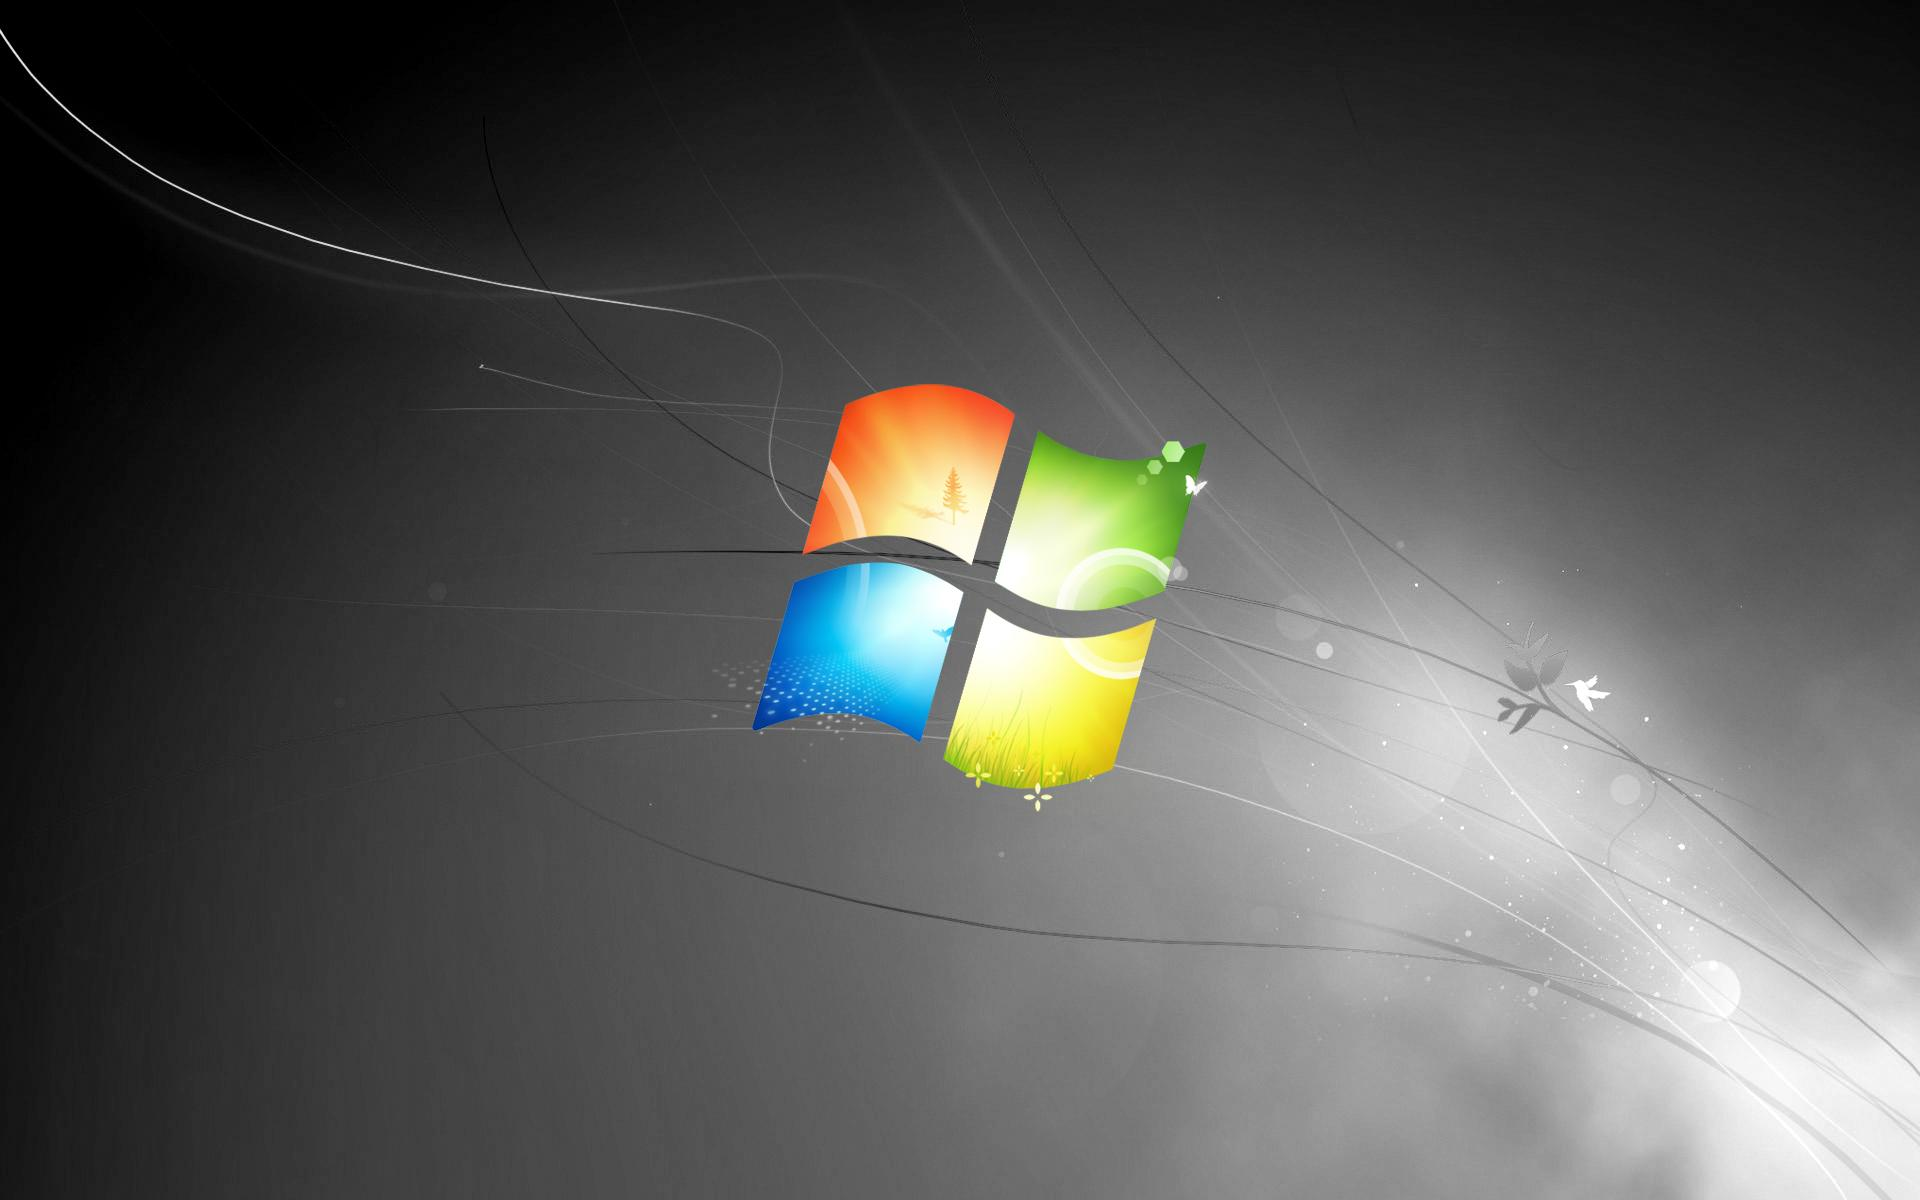 Windows 7 Black Backgrounds - Wallpaper Cave